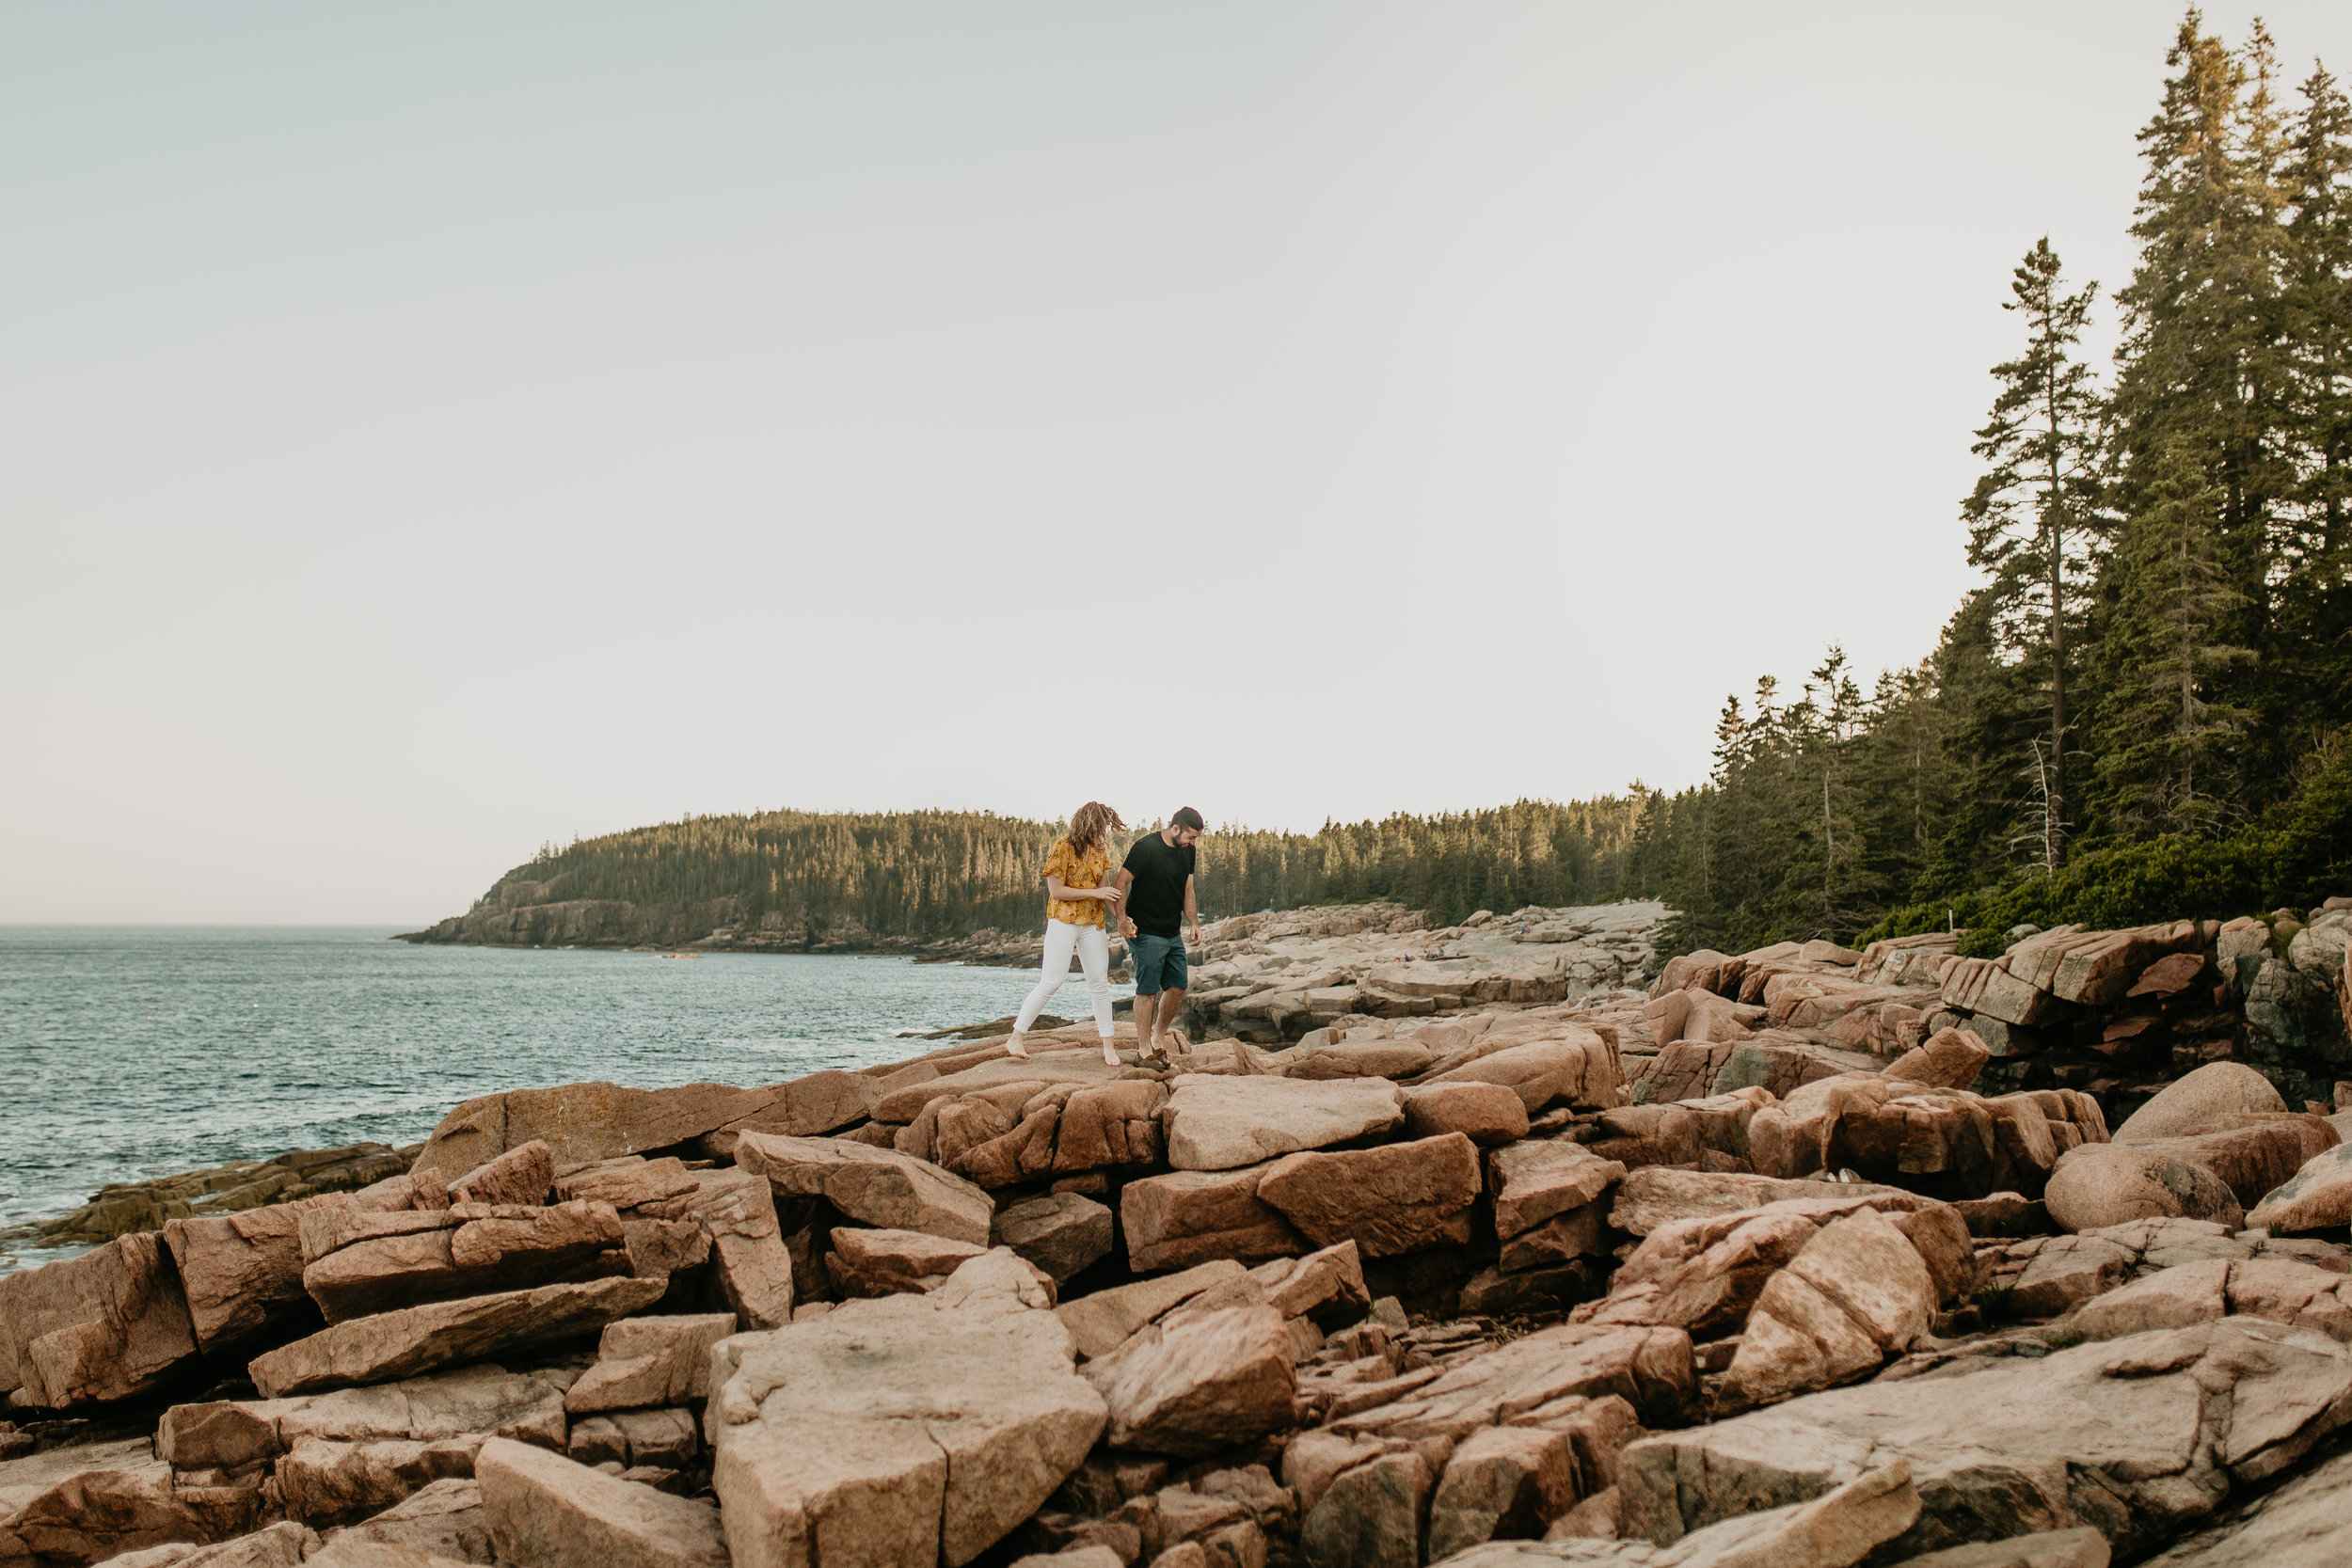 nicole-daacke-photography-adventurous-elopement-traveling-destination-wedding-photographer-national-park-engagement-sessions-9997.jpg